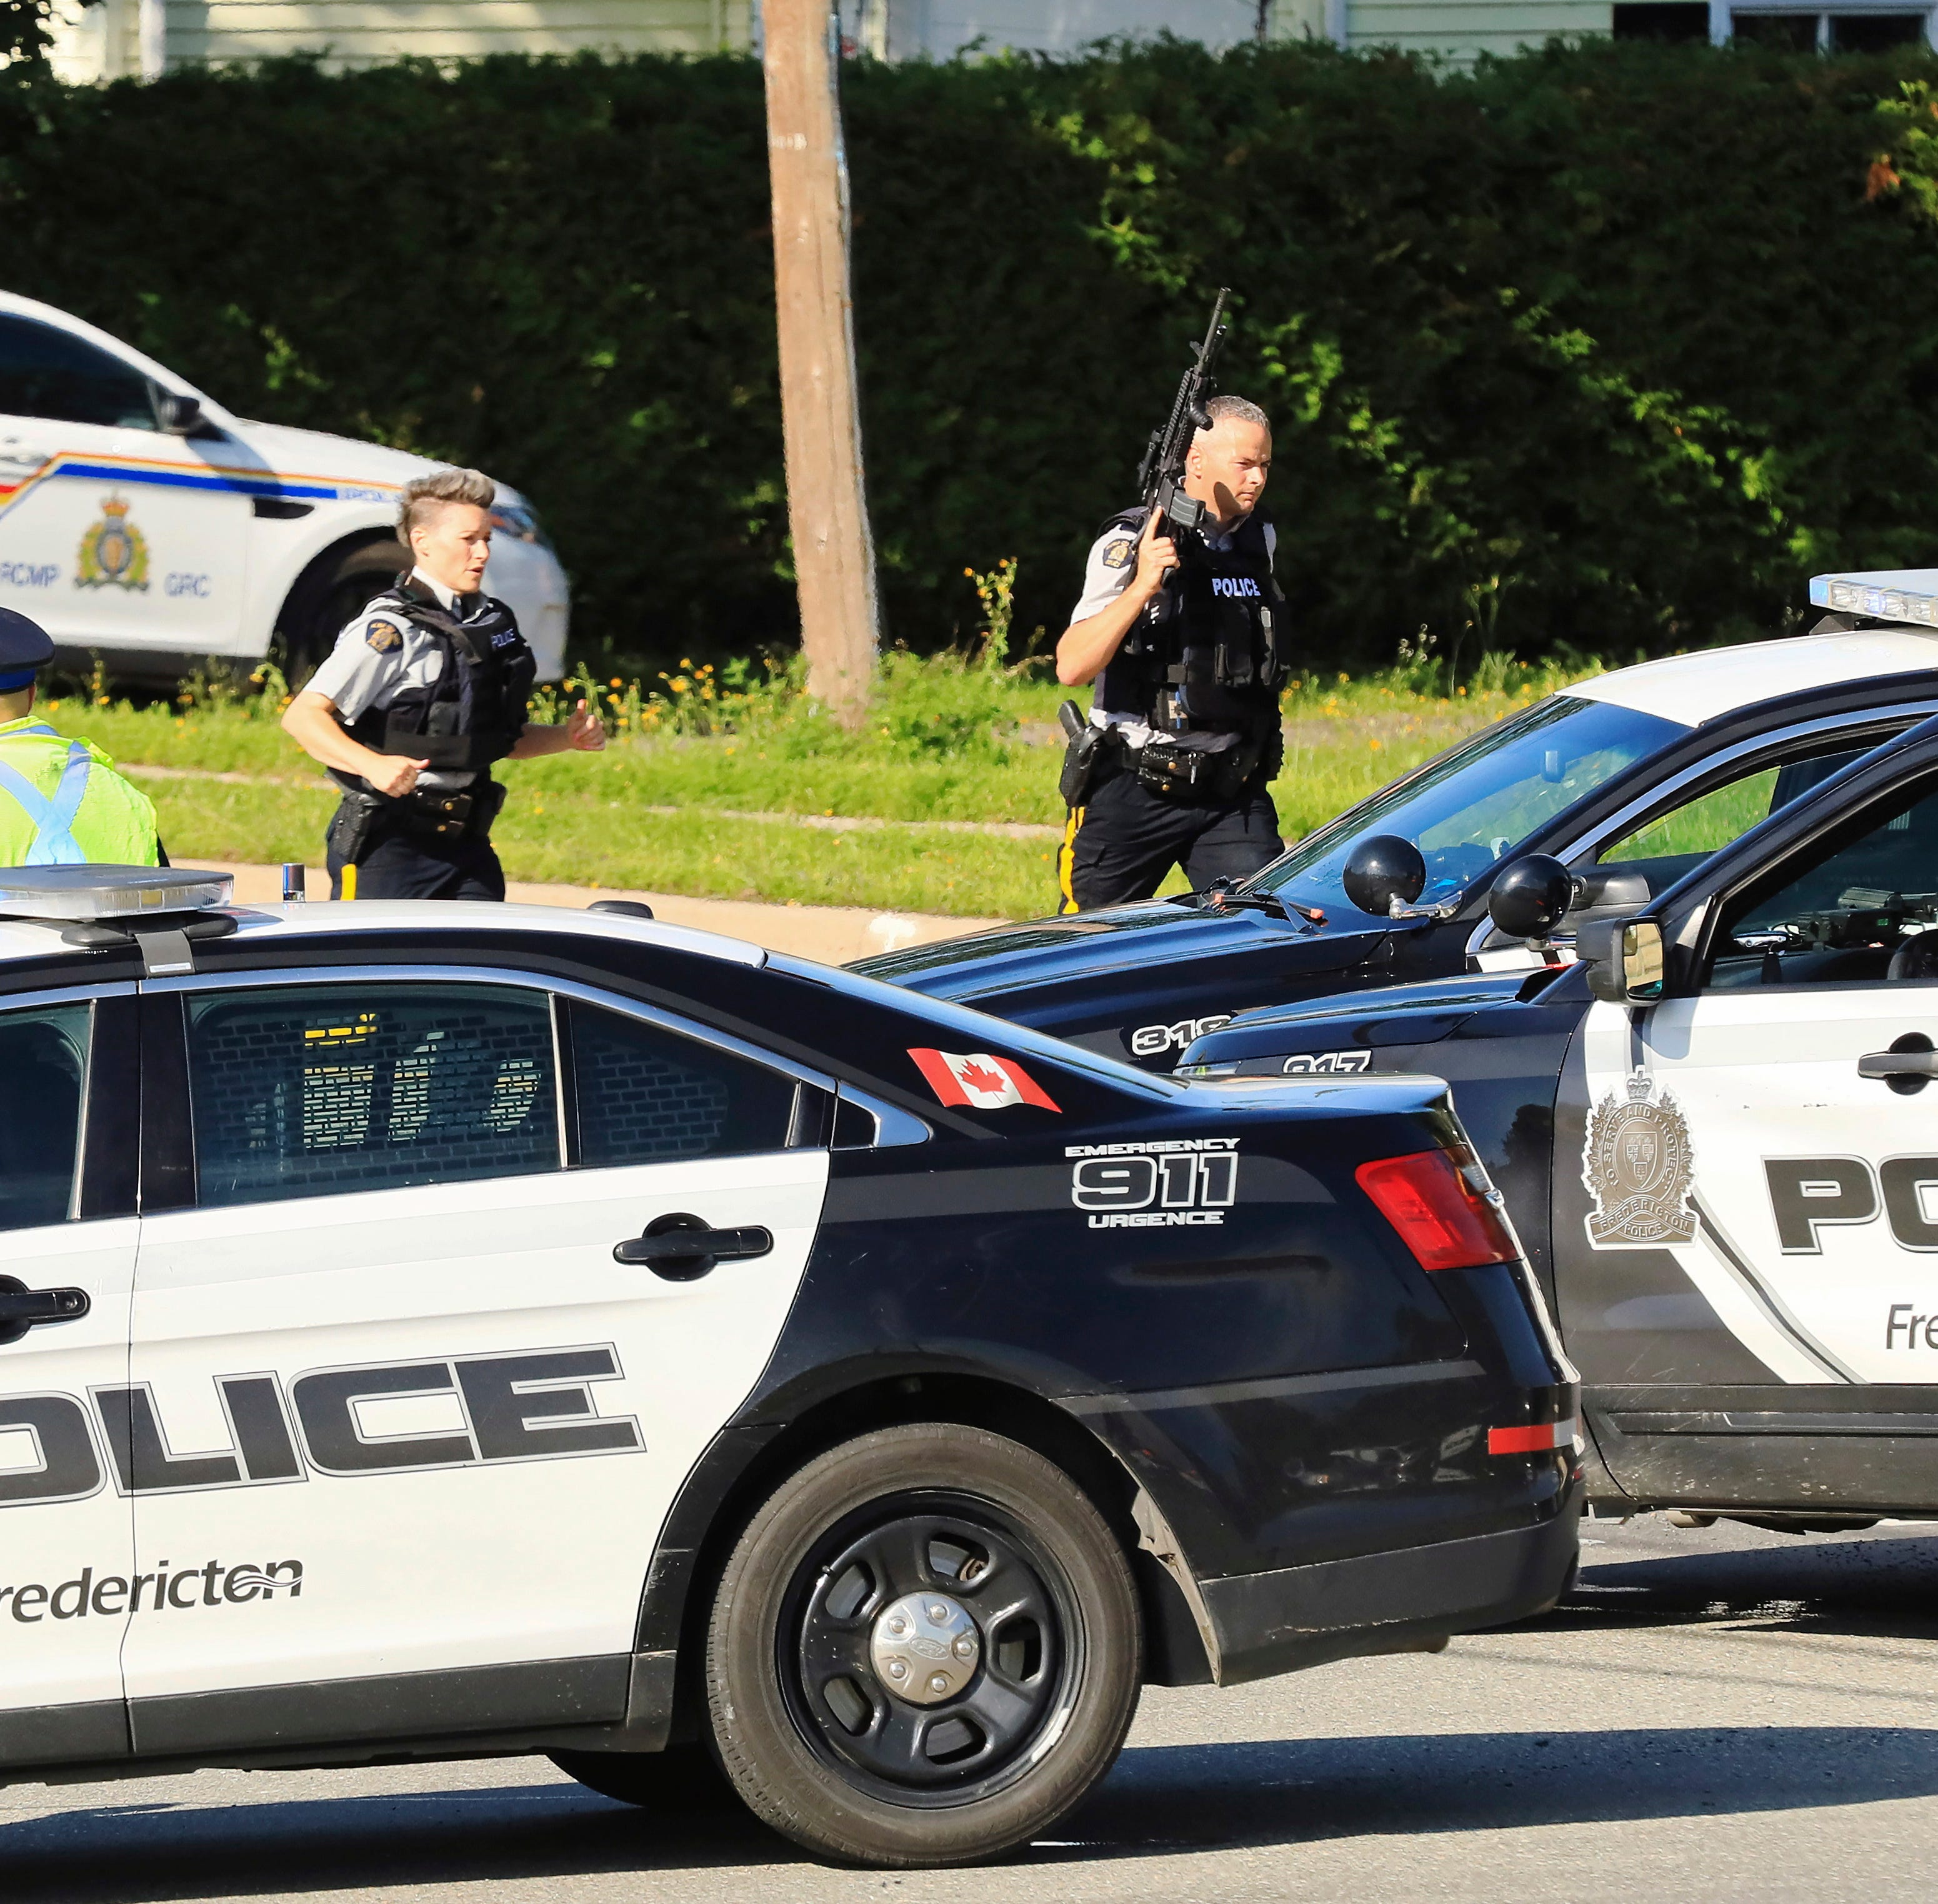 Police and RCMP officers survey the area of a shooting in Fredericton, New Brunswick, Canada on  Aug.  10, 2018.  Fredericton police say two officers were among four people who died in a shooting in a residential area on the city's north side. One person was in custody, they said.